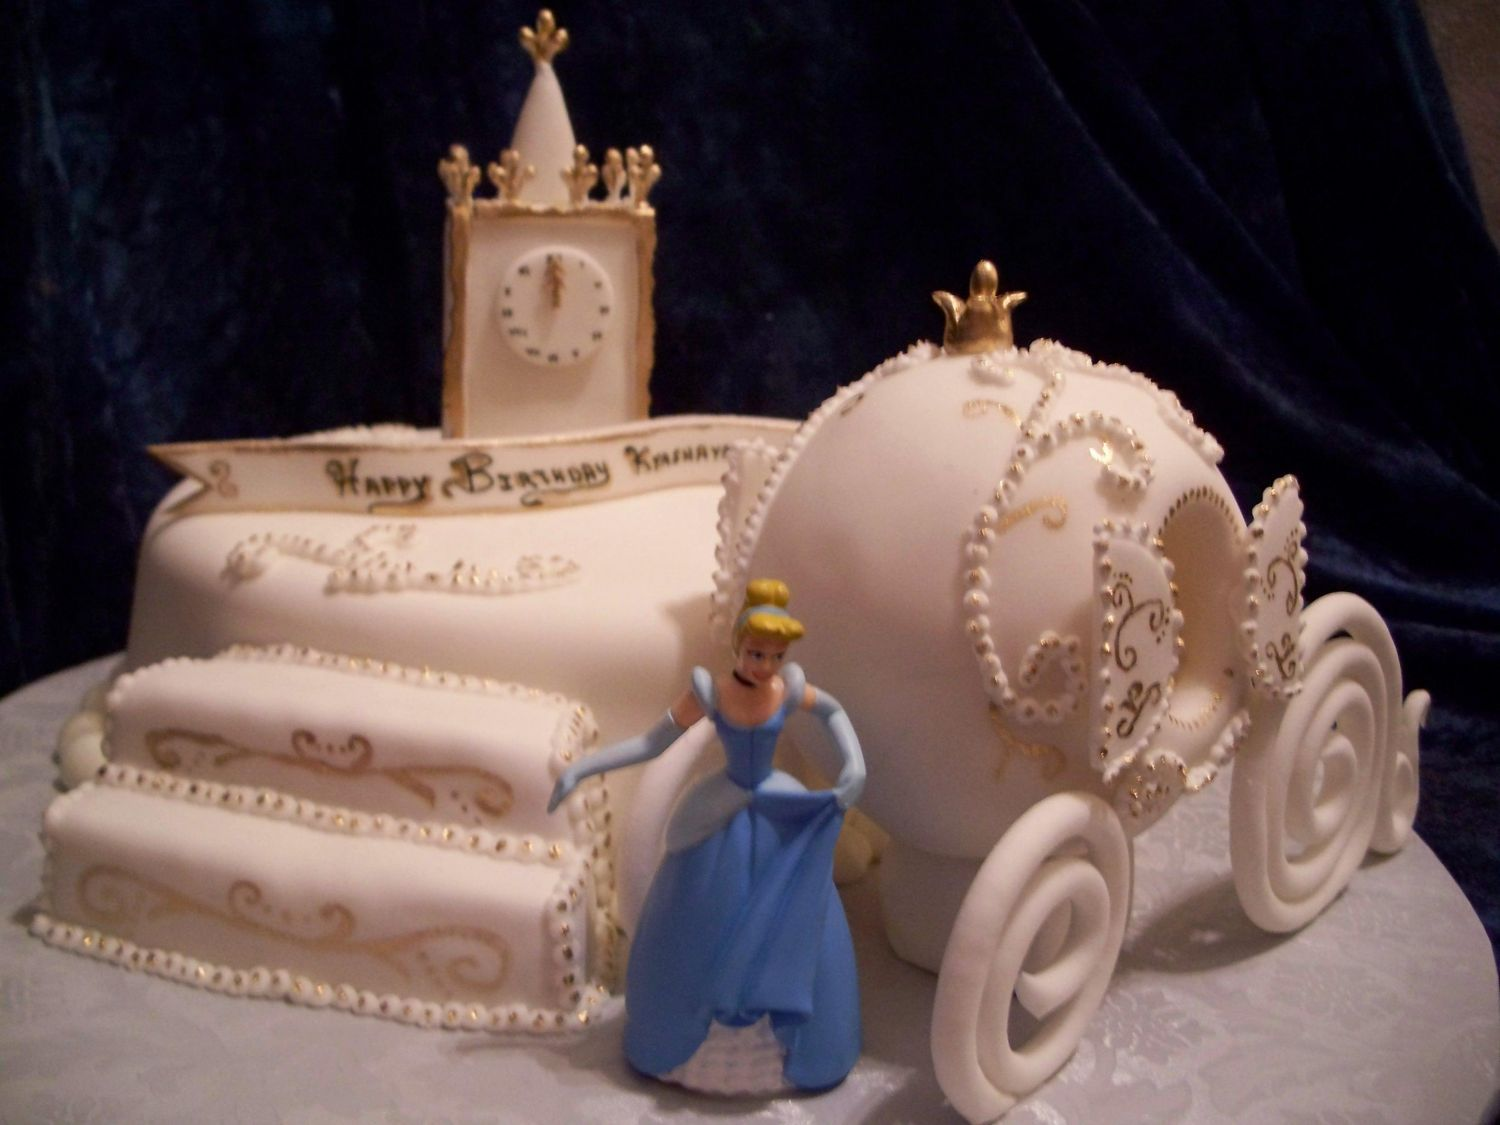 Cinderella 2 Carriage is made out of sugar and covered in fondant